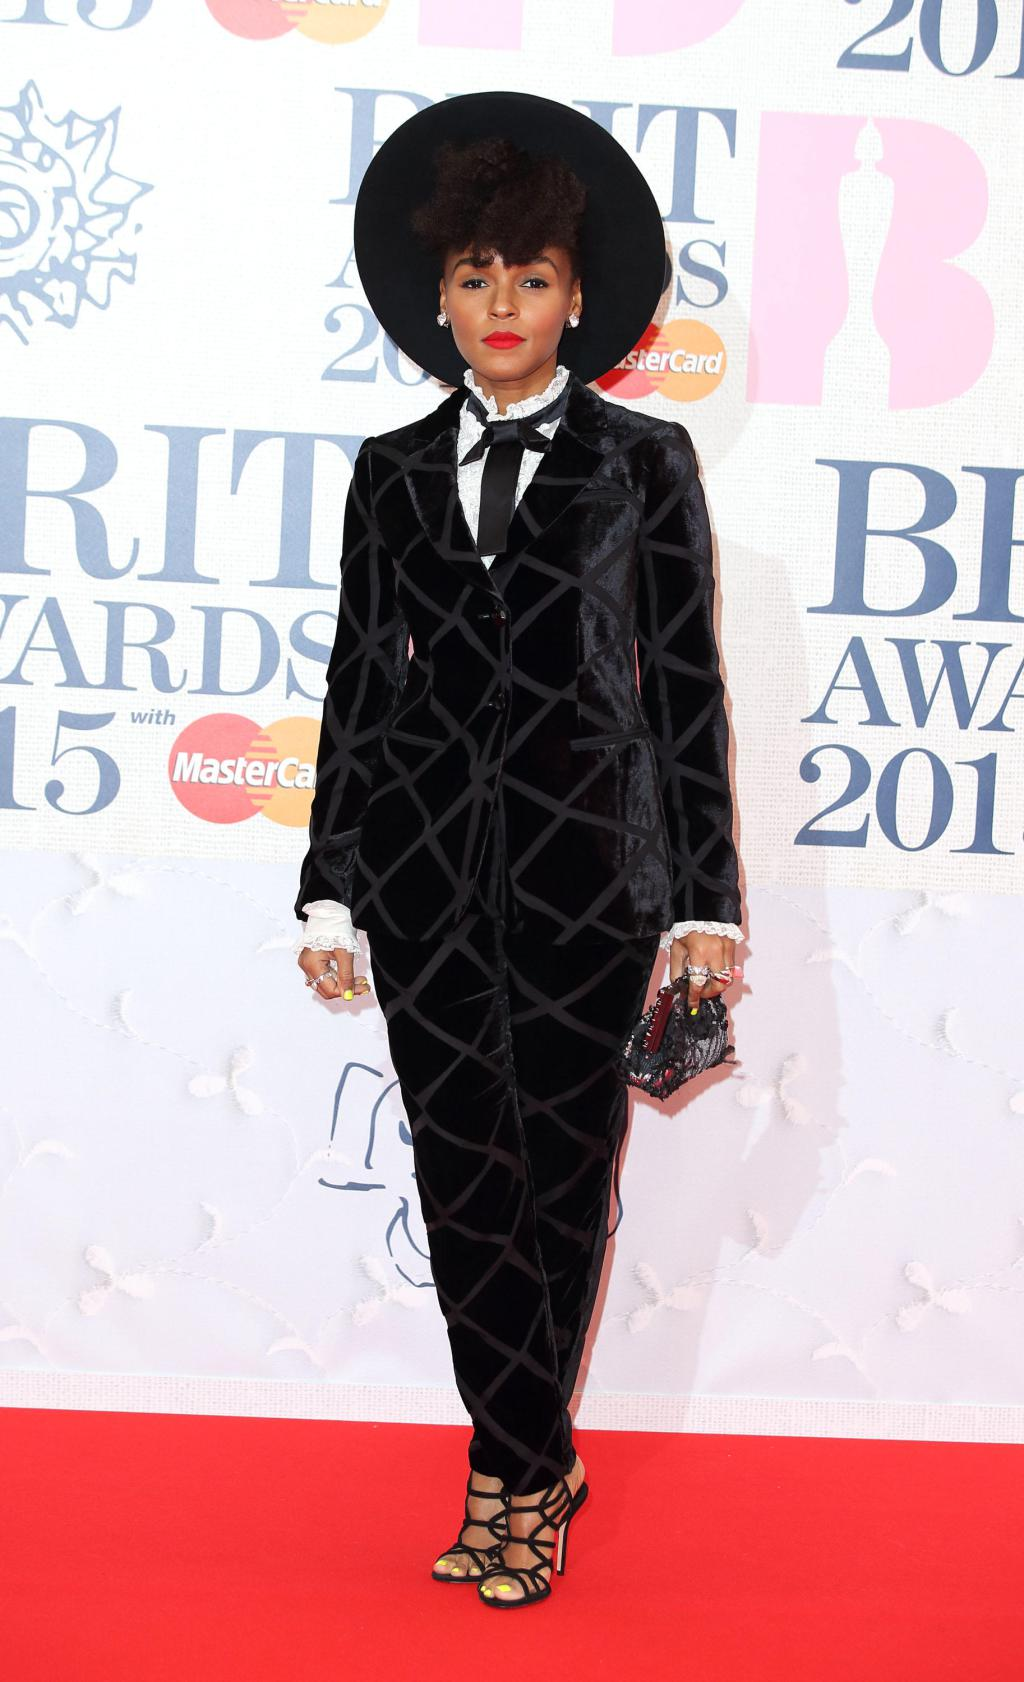 BRIT Awards 2015 – Red Carpet Arrivals